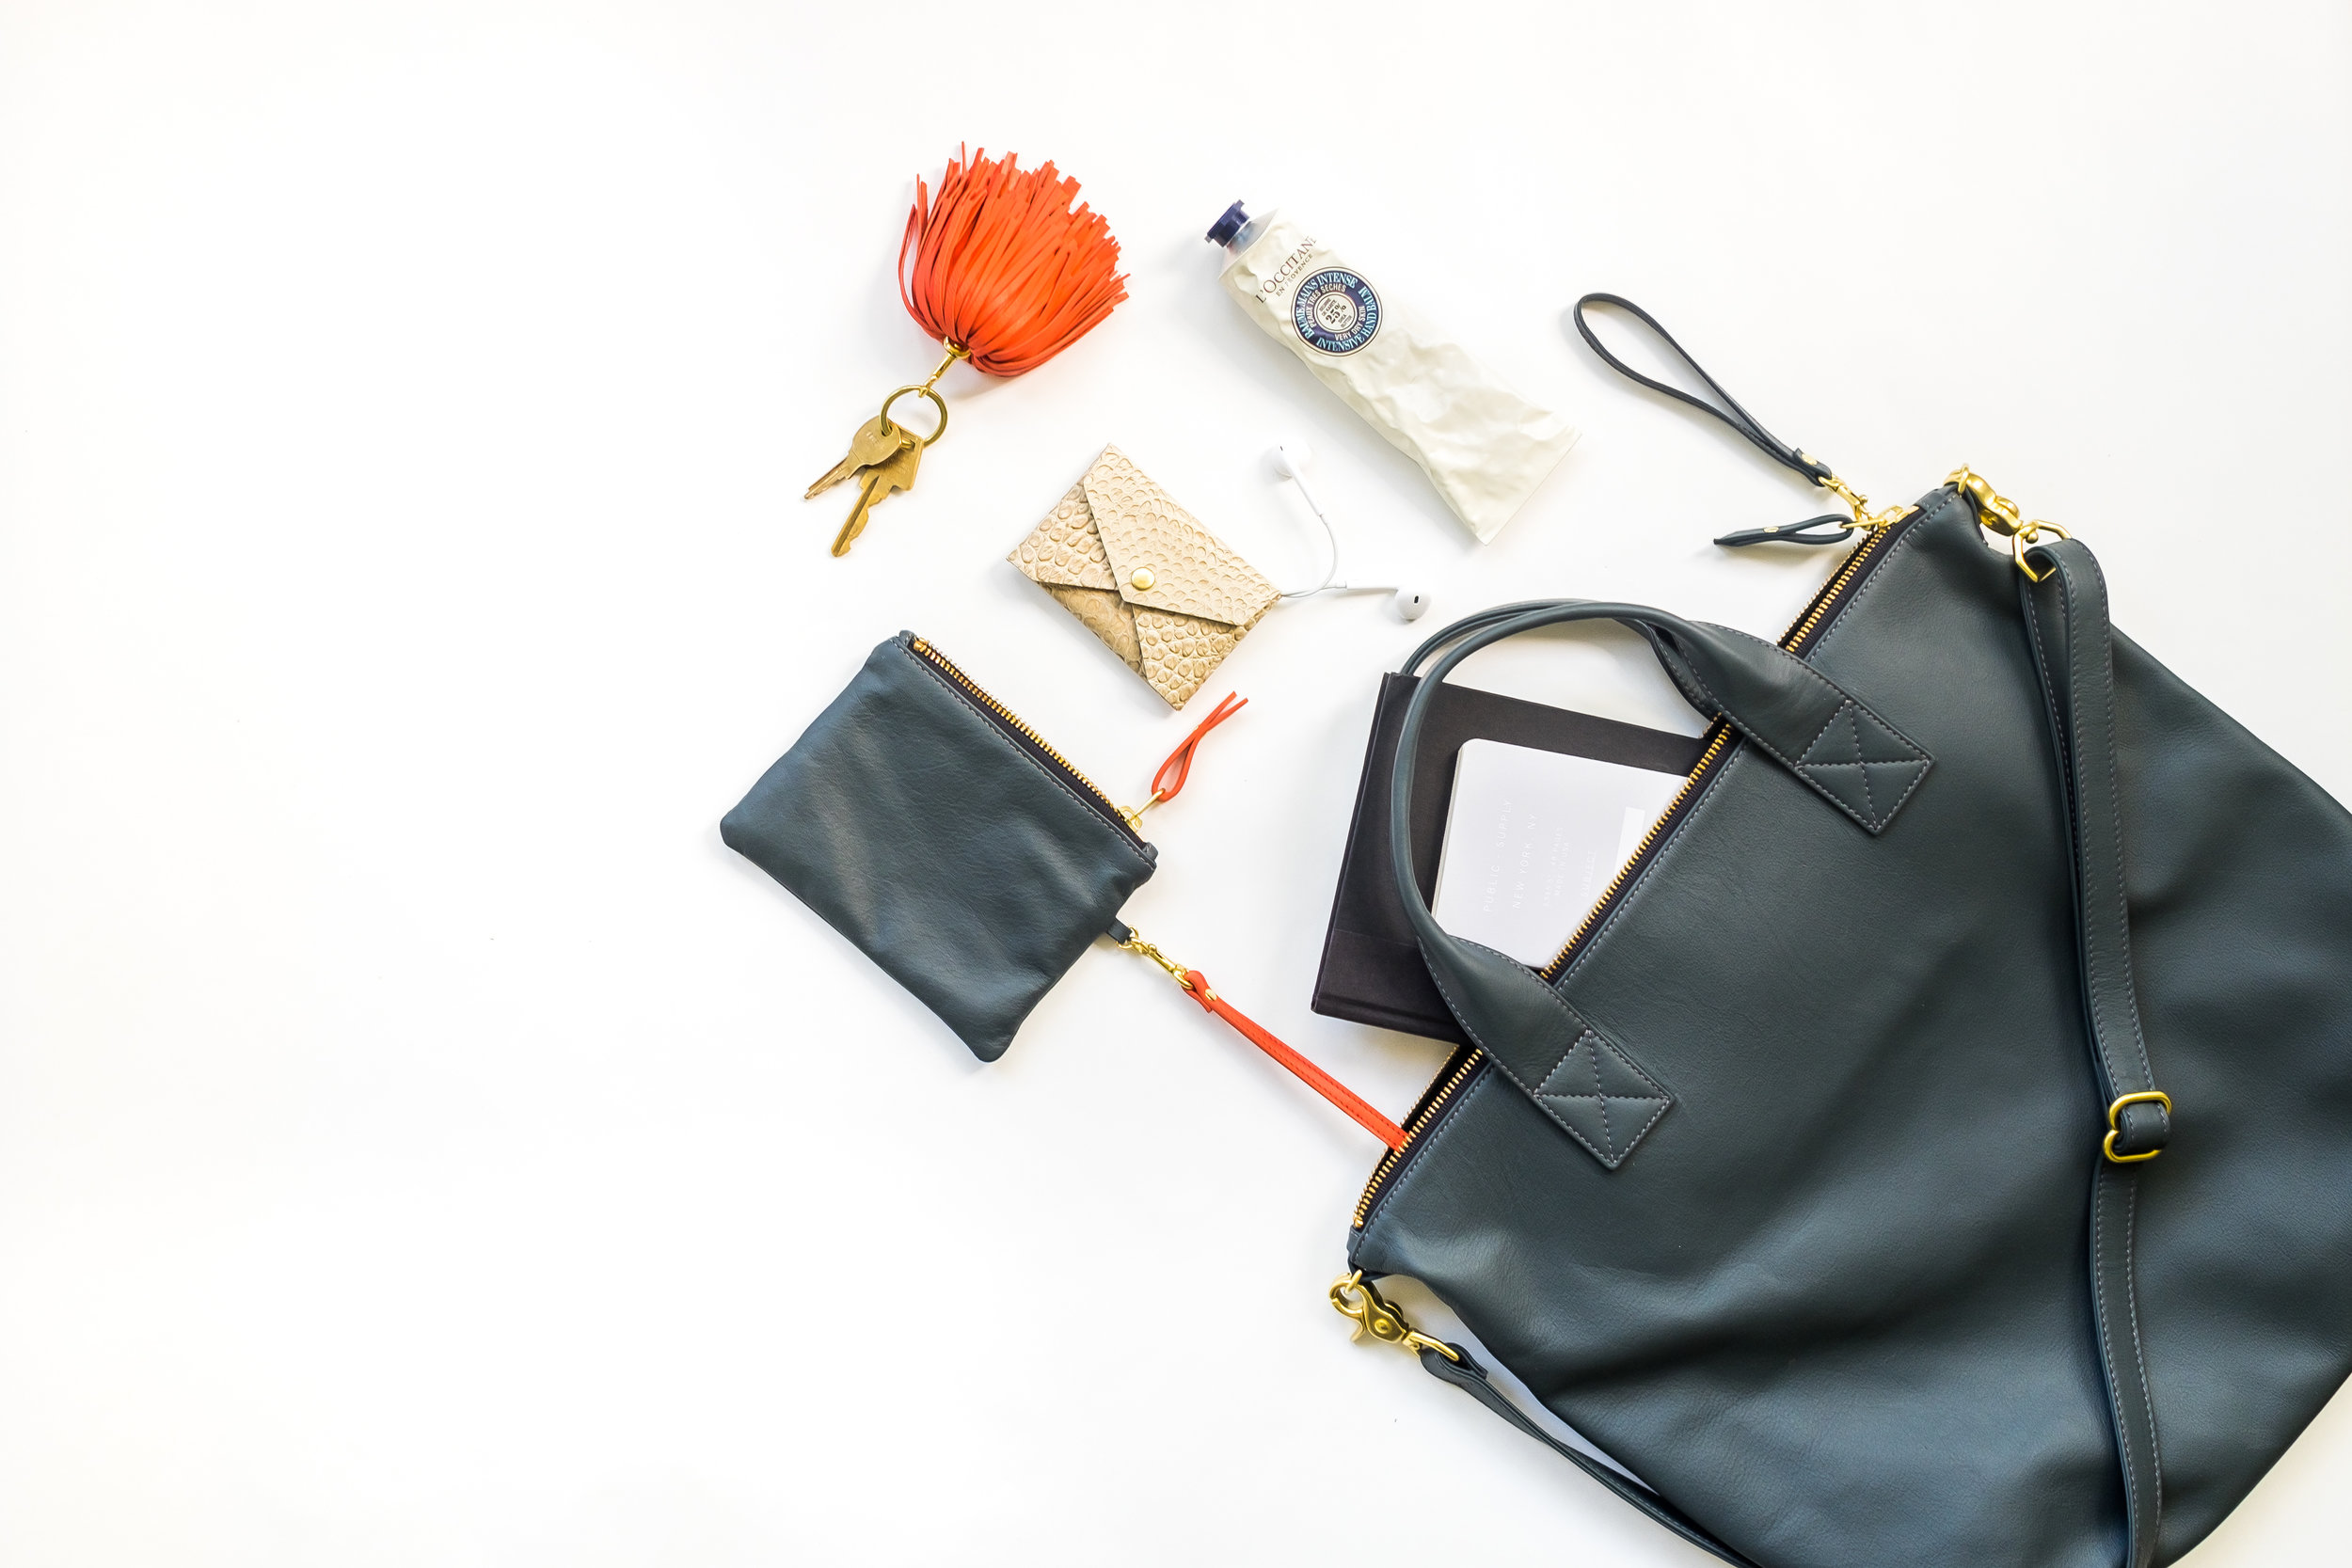 Blair Ritchey Leather Handbags - Product Photography